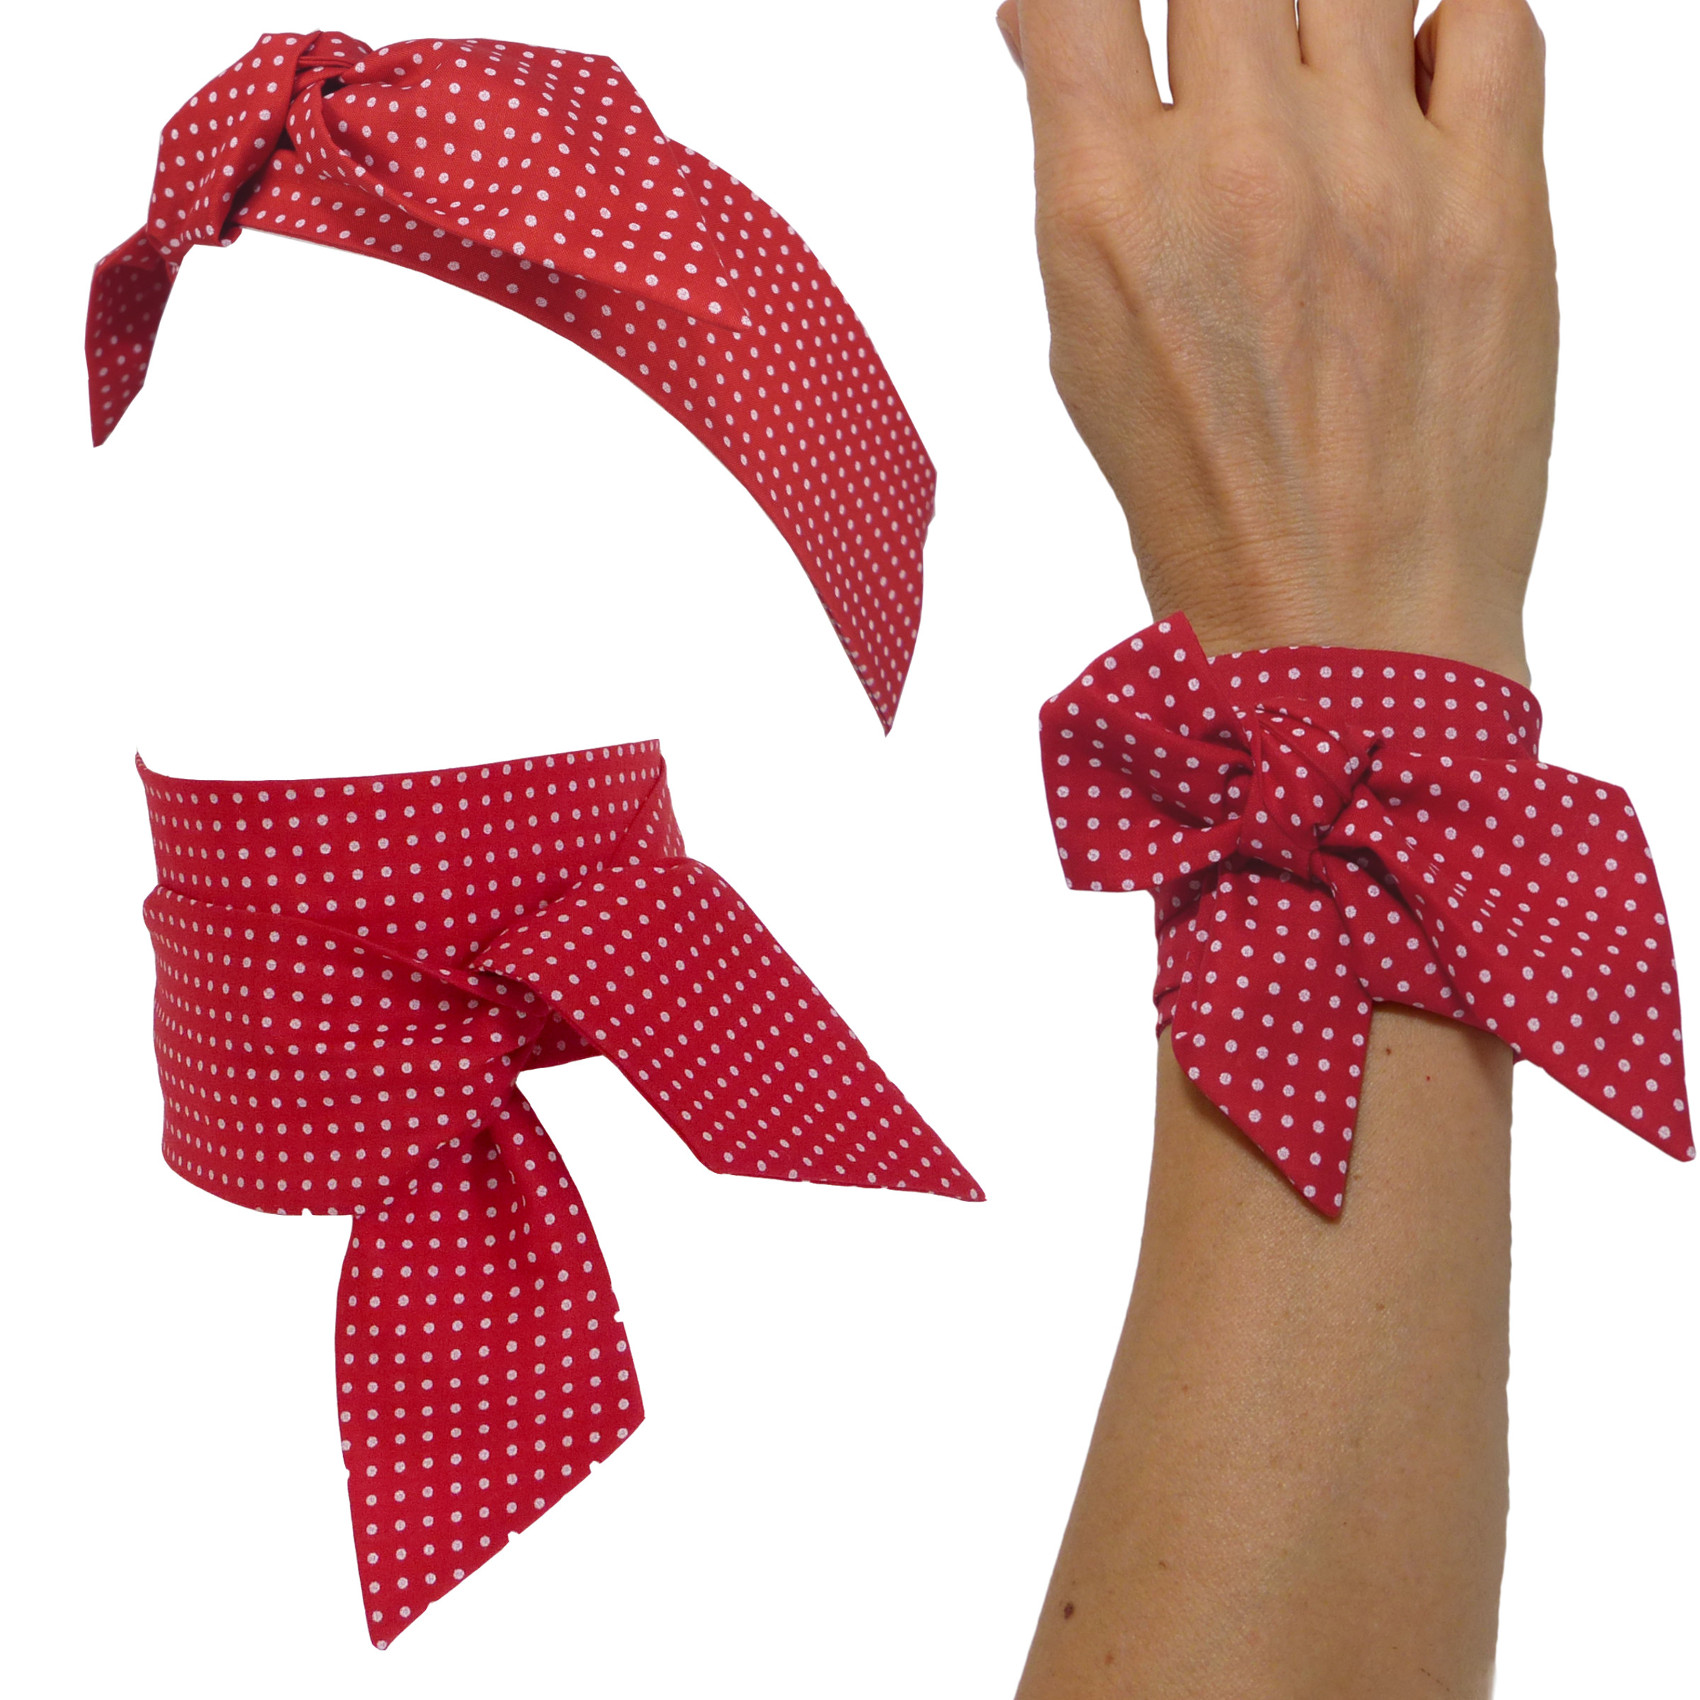 2b9c7d7c1df4 skinny scarf neck, hair bow tie, cotton, small polka dots on dark red